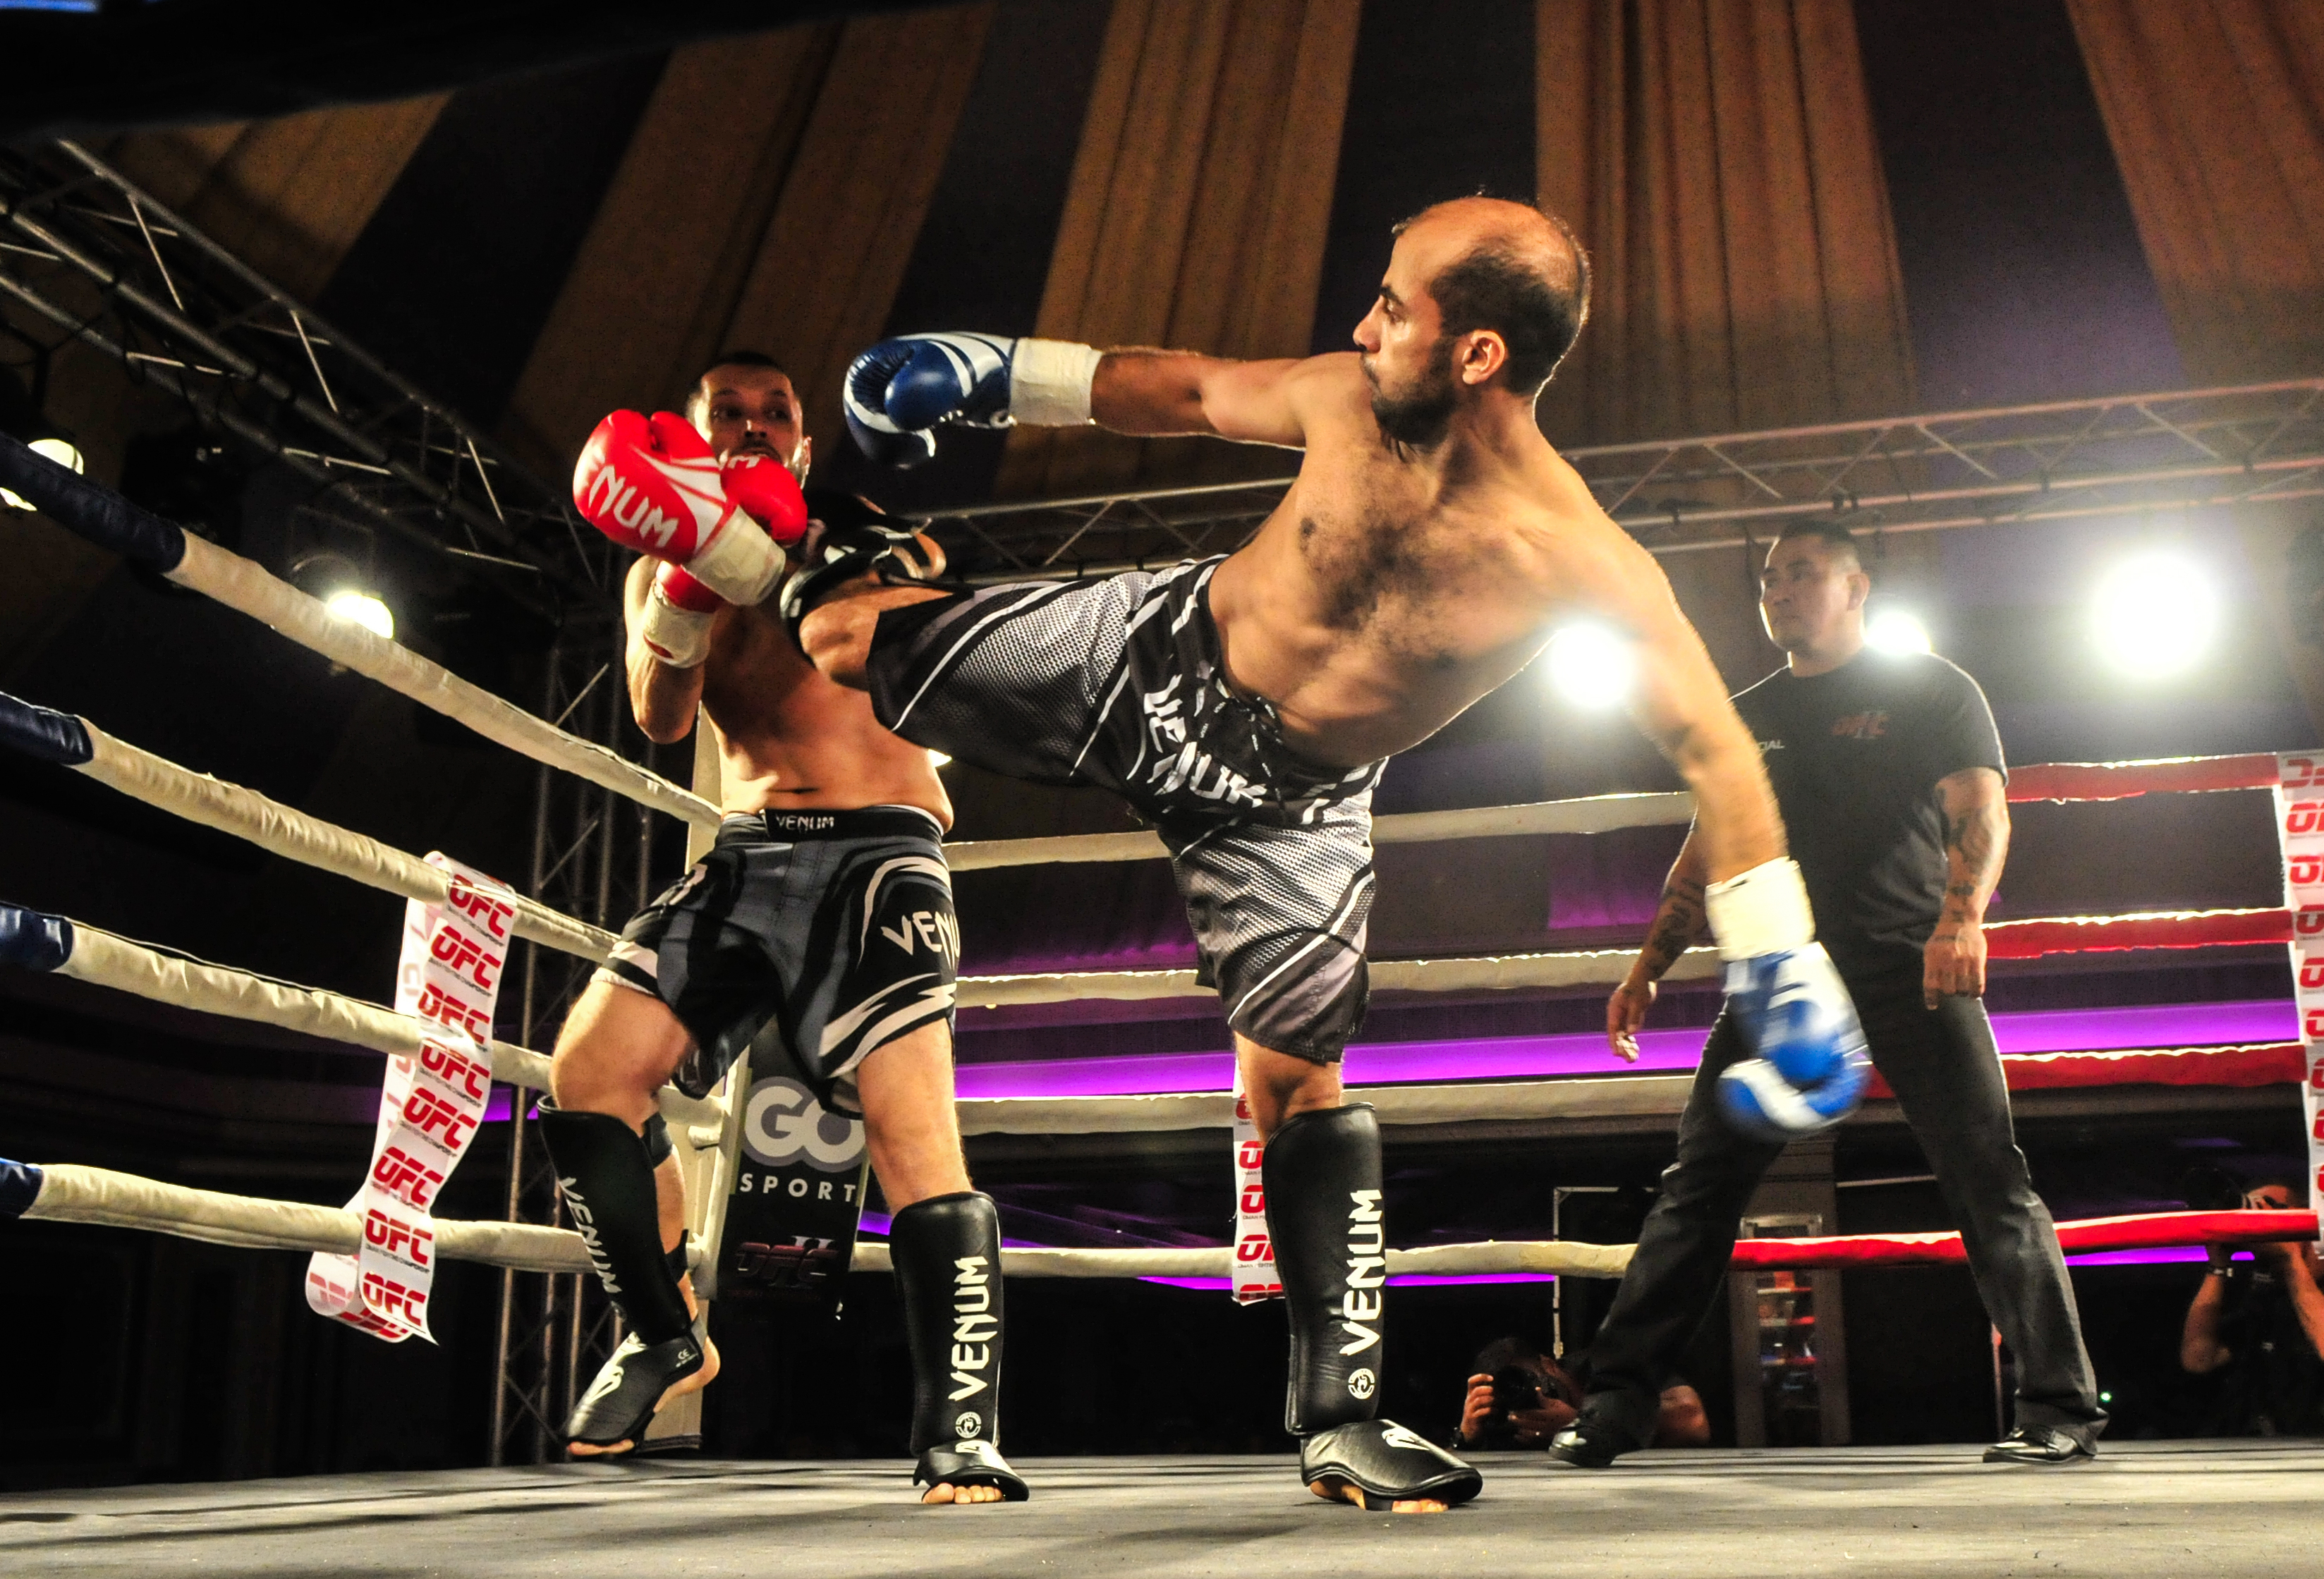 Chronicles of the Oman Fighting Championship